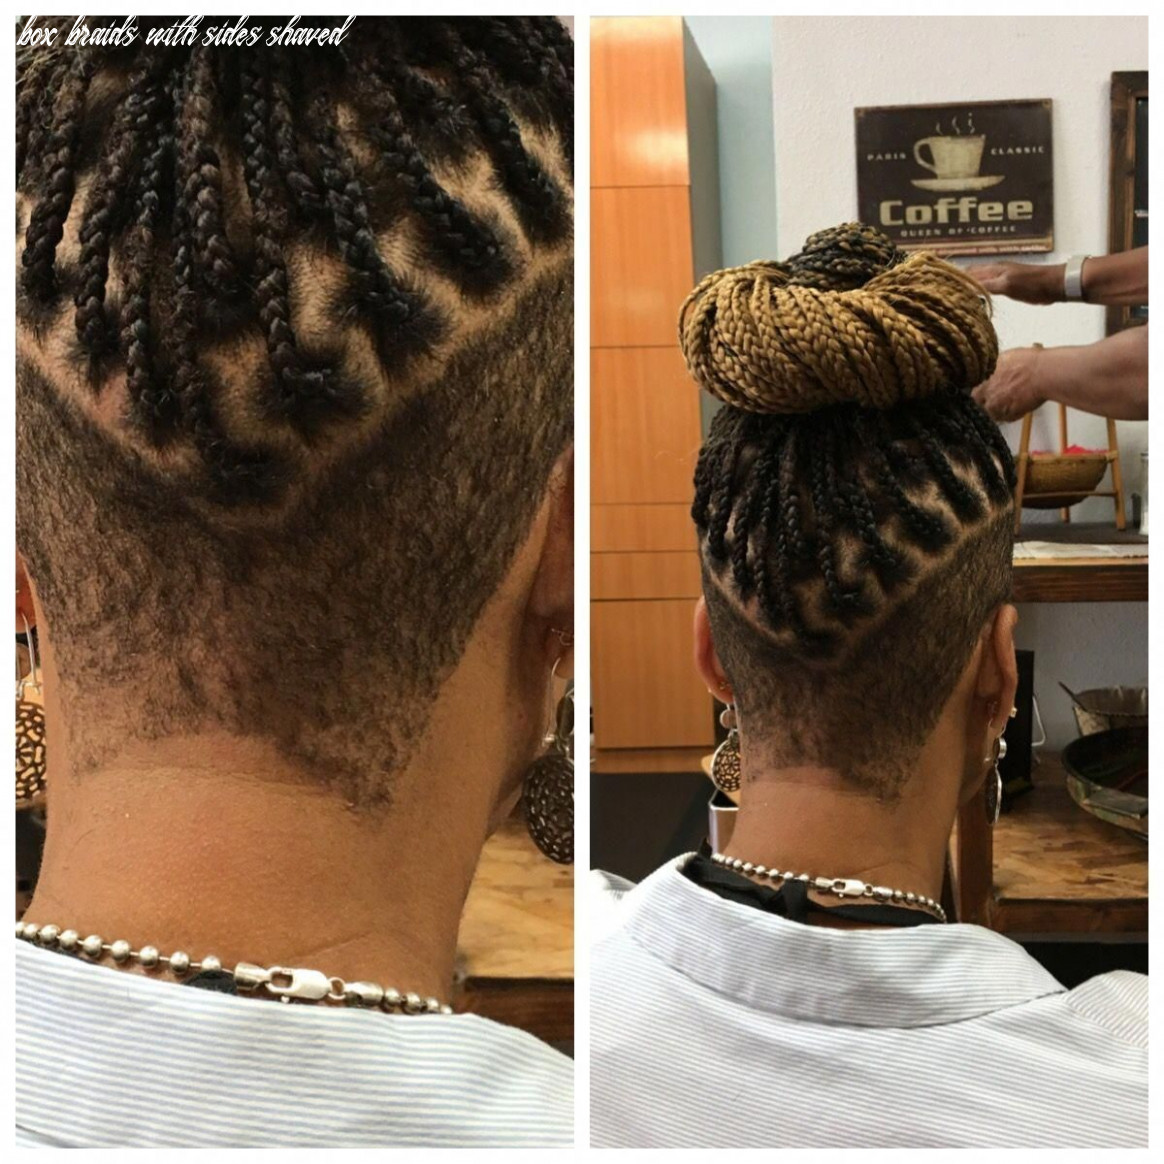 Pin by Tip12 on Braids with shaved sides in 12   Braids with ...